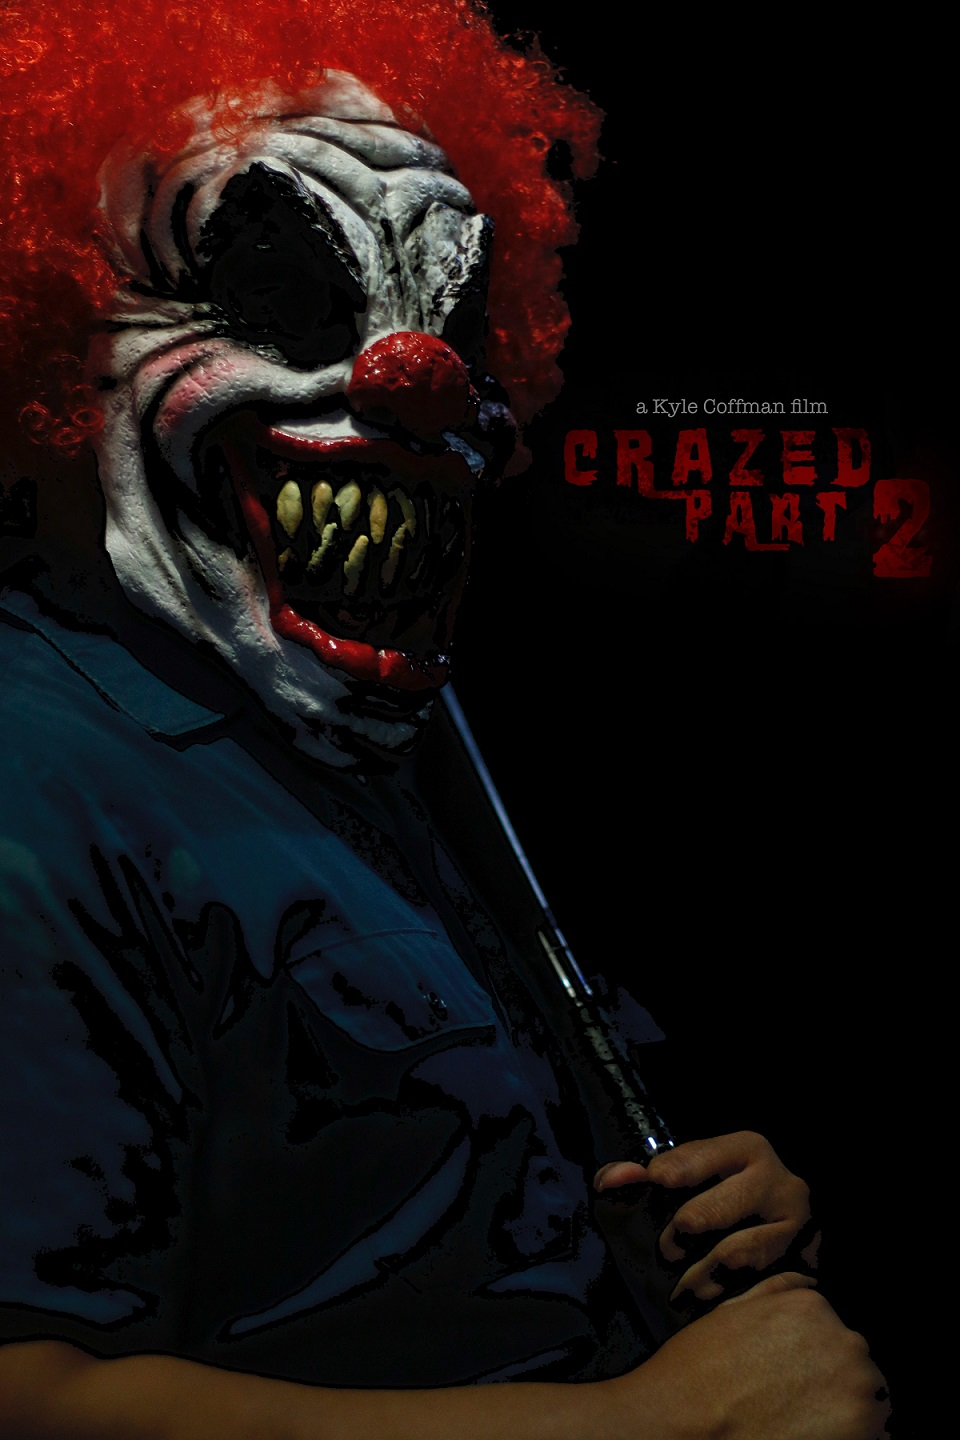 CRAZED PART 2 RELEASED ONLINE